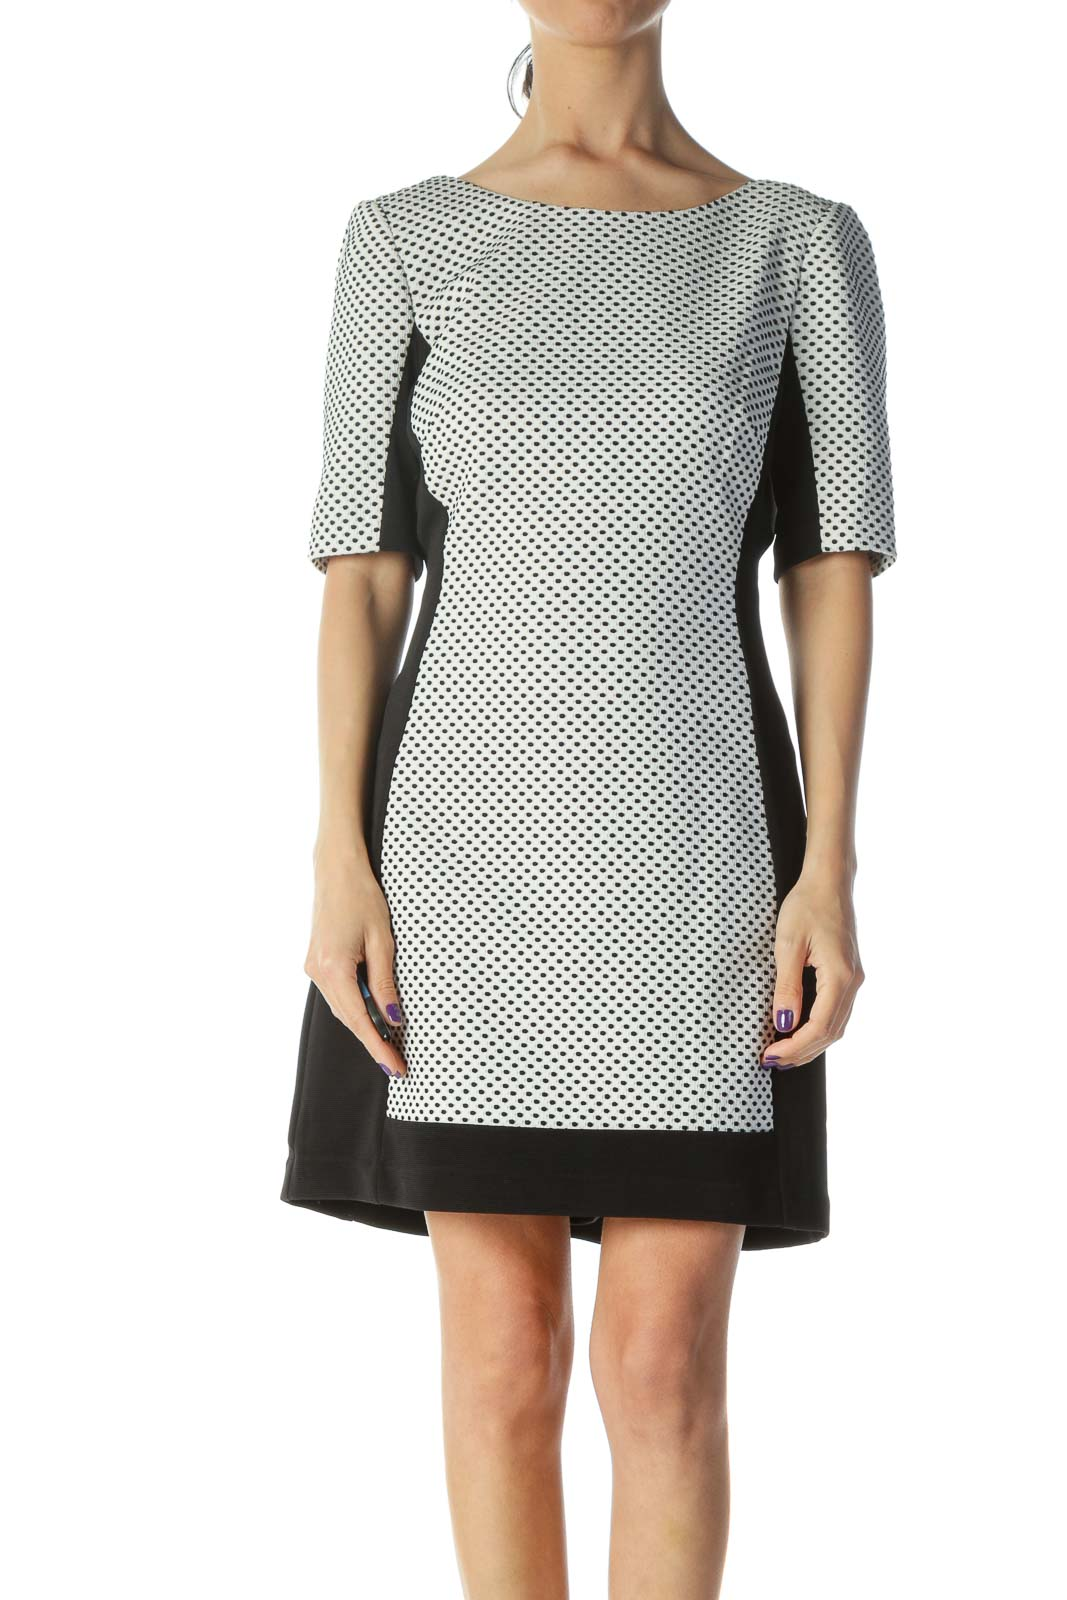 Black Cream Printed Sheath Dress Front